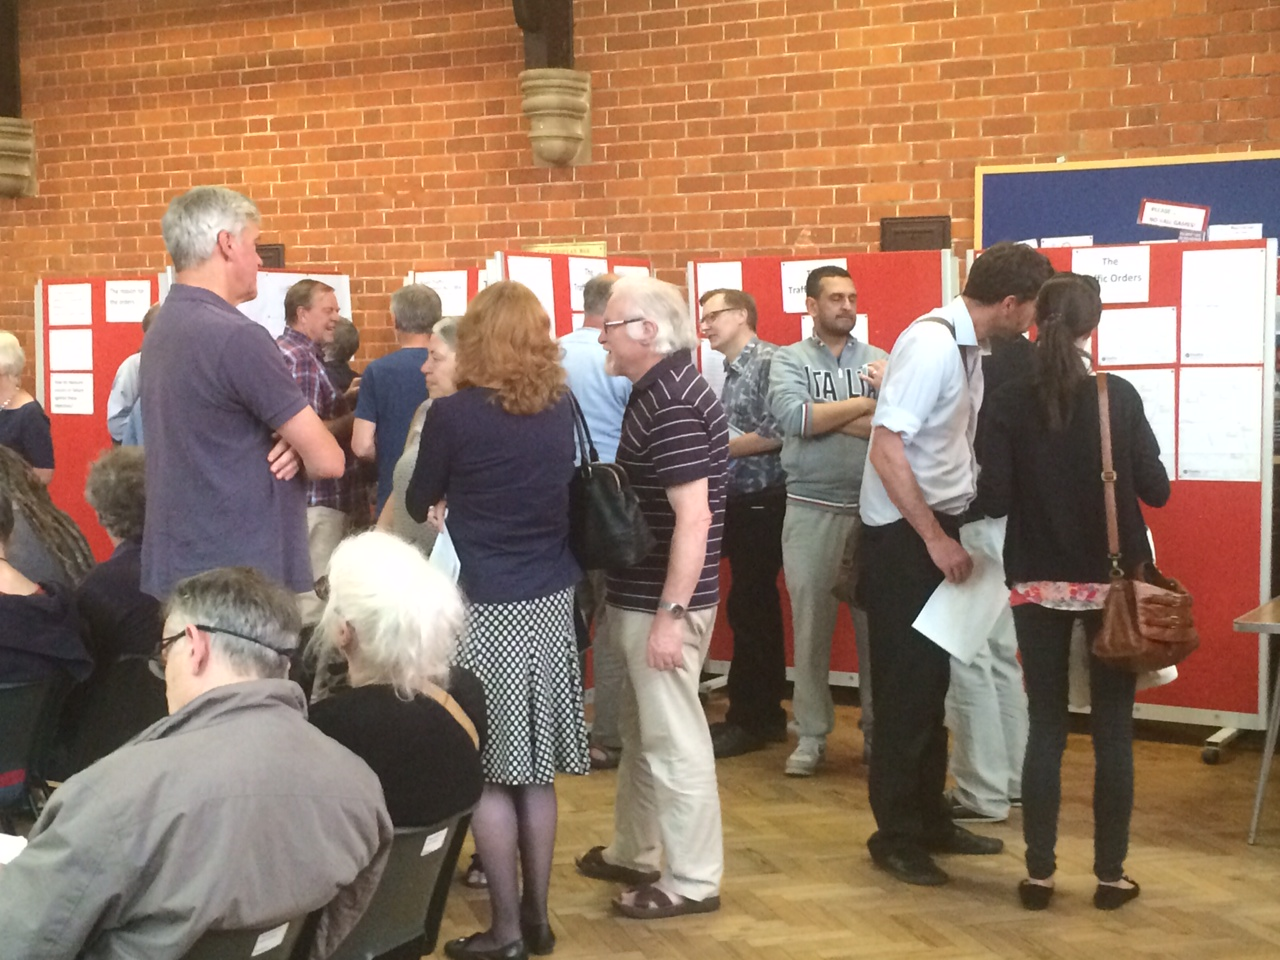 Residents peruse the proposed changes at the public meeting